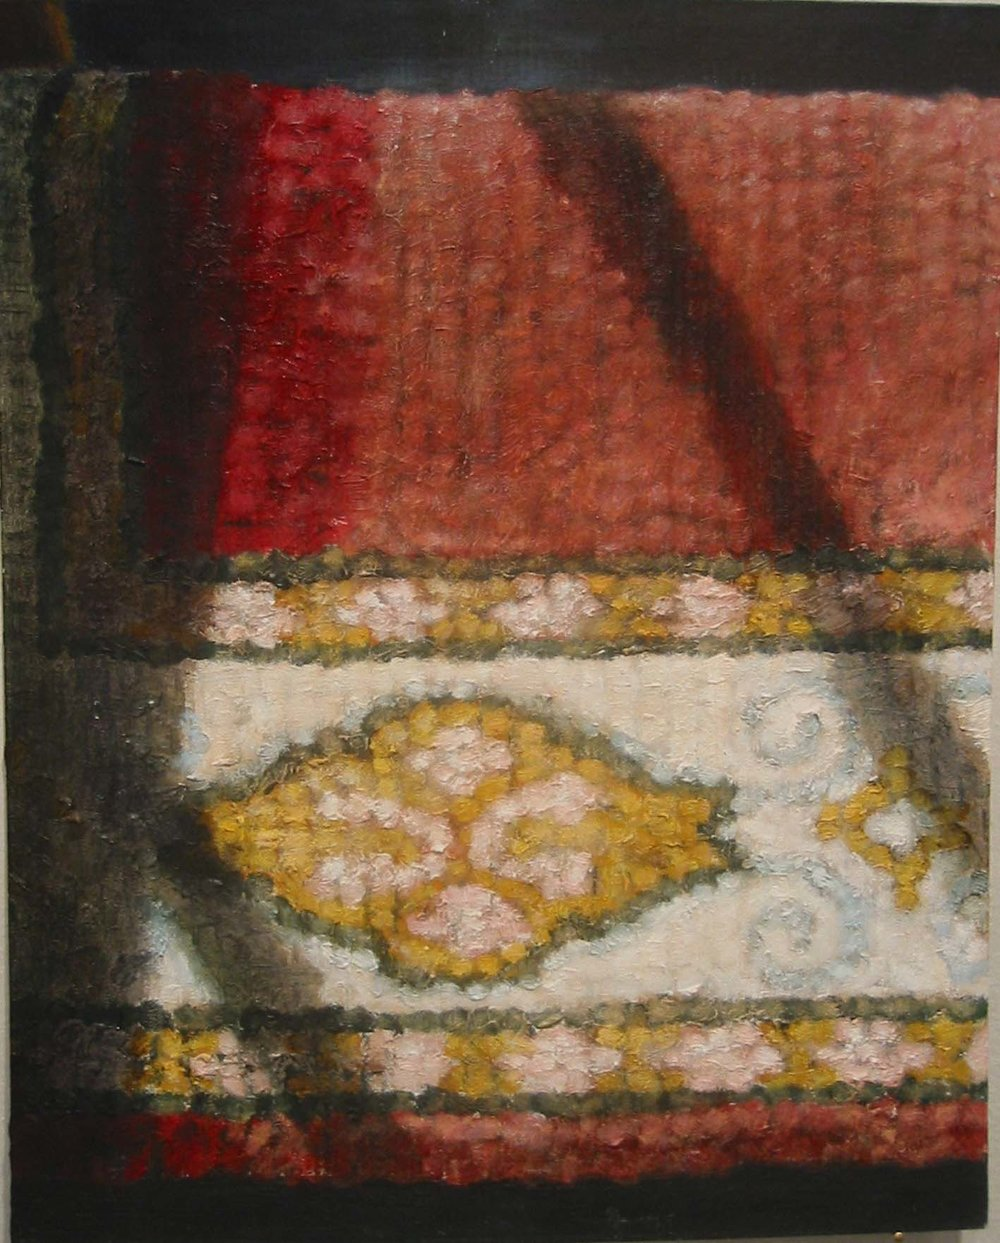 Interior with rug  Oil on board 35x27 cm 2003